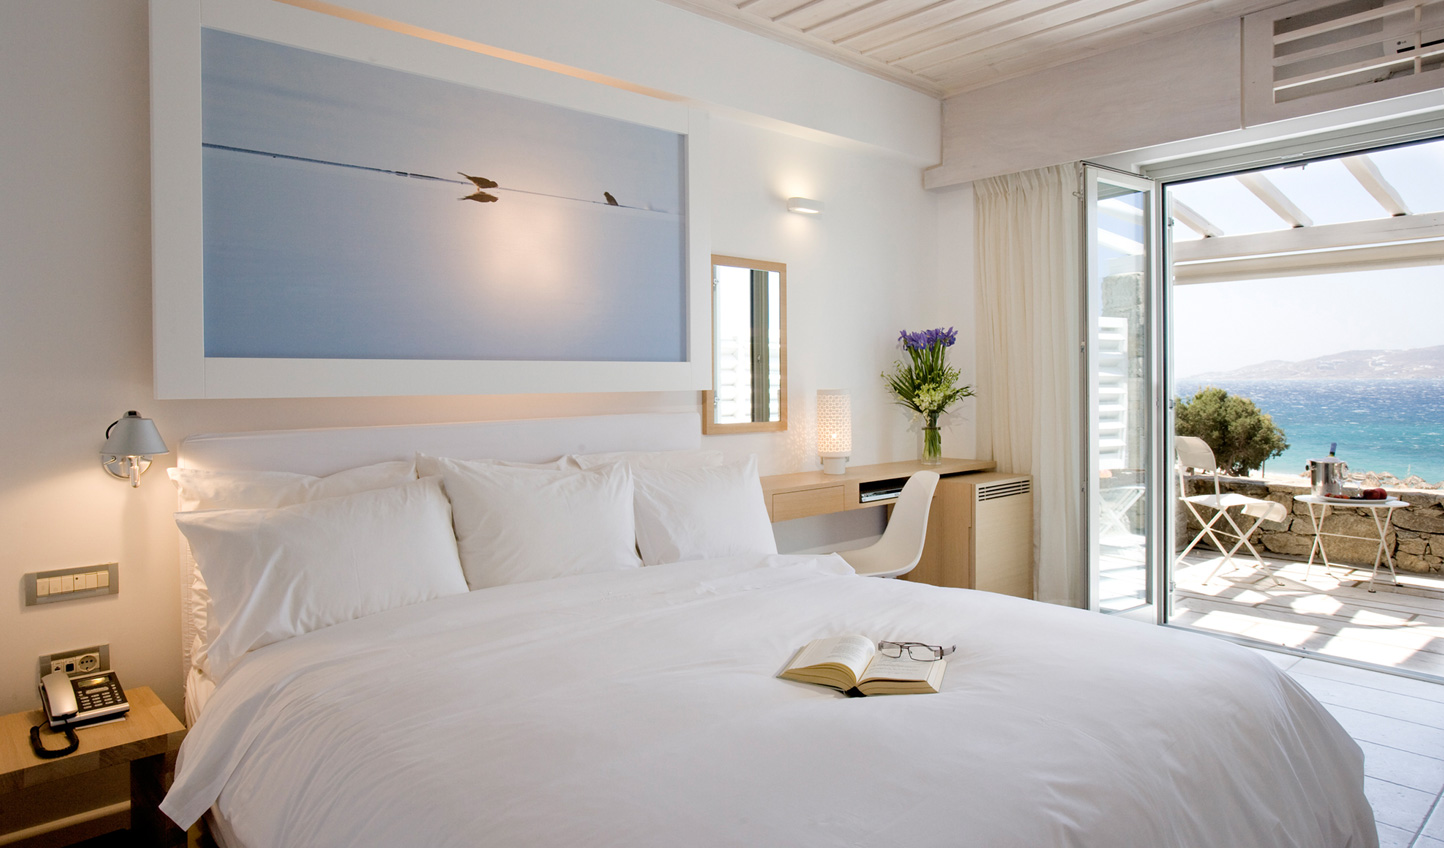 From your stylish room, step out onto a private balcony